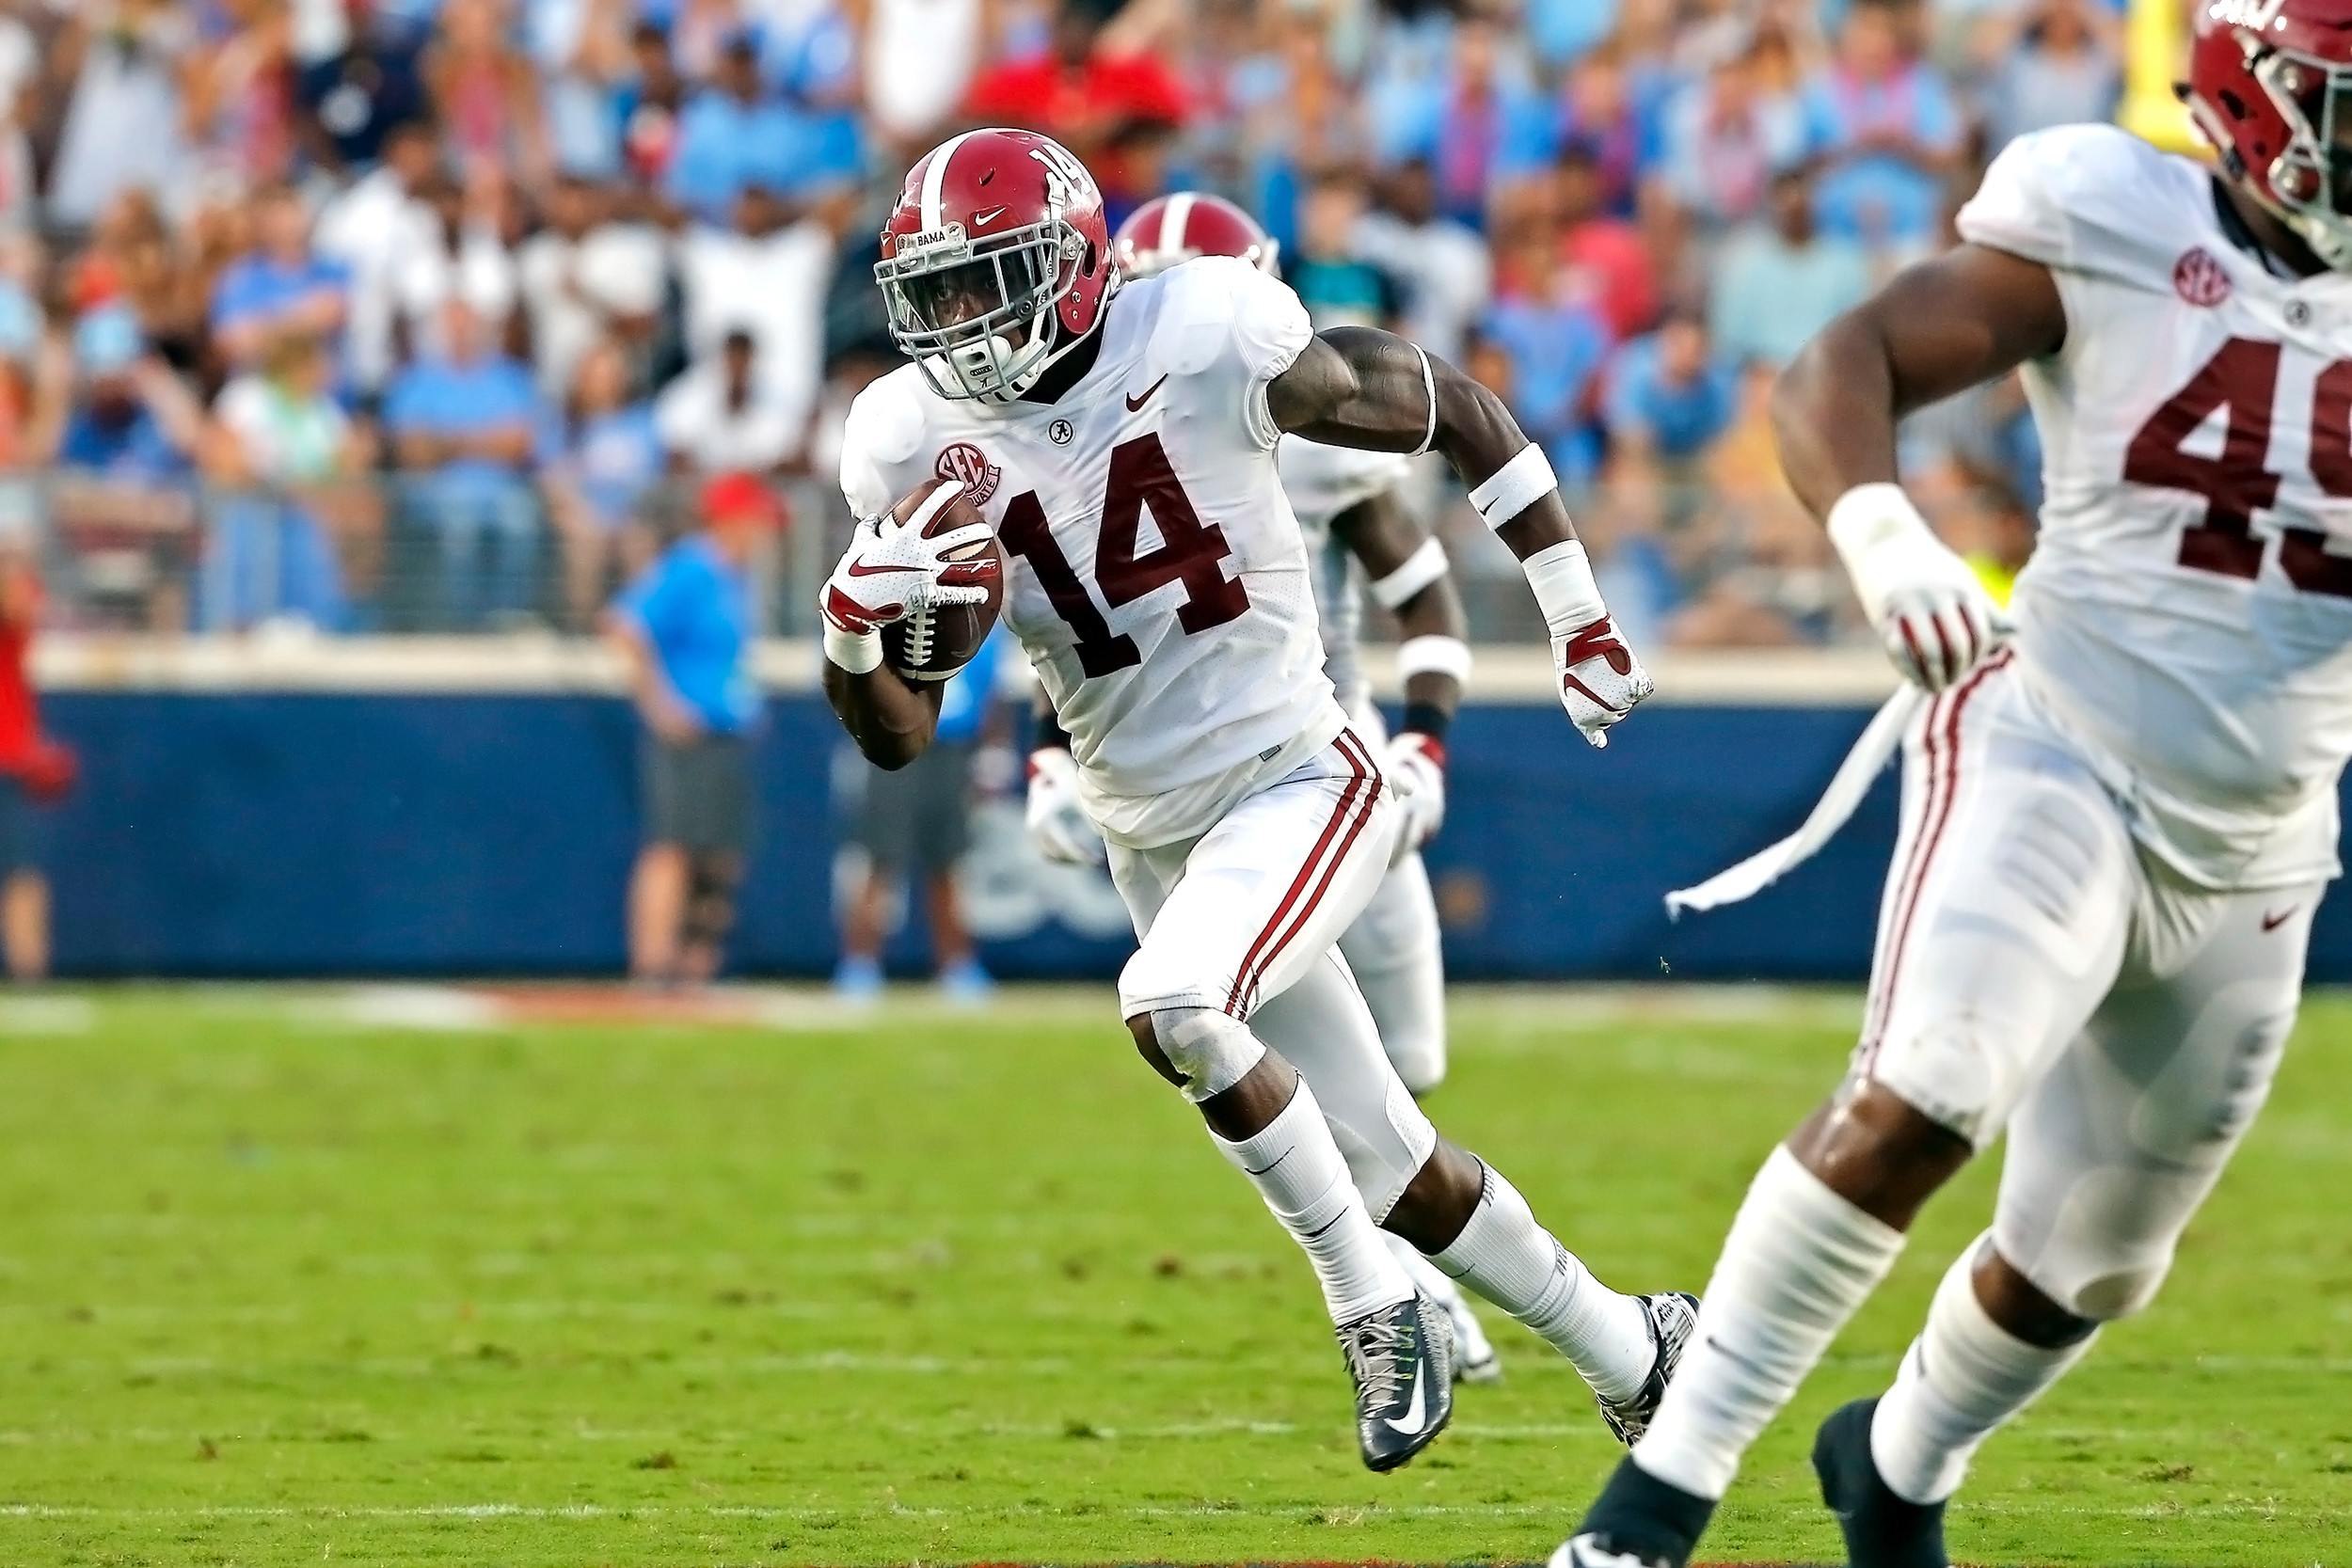 Alabama Crimson Tide defensive back Deionte Thompson (14) returns the ball after an interception during the game between the University of Alabama and Ole Miss at Vaught-Hemingway Stadium. Jason Clark / Daily Mountain Eagle